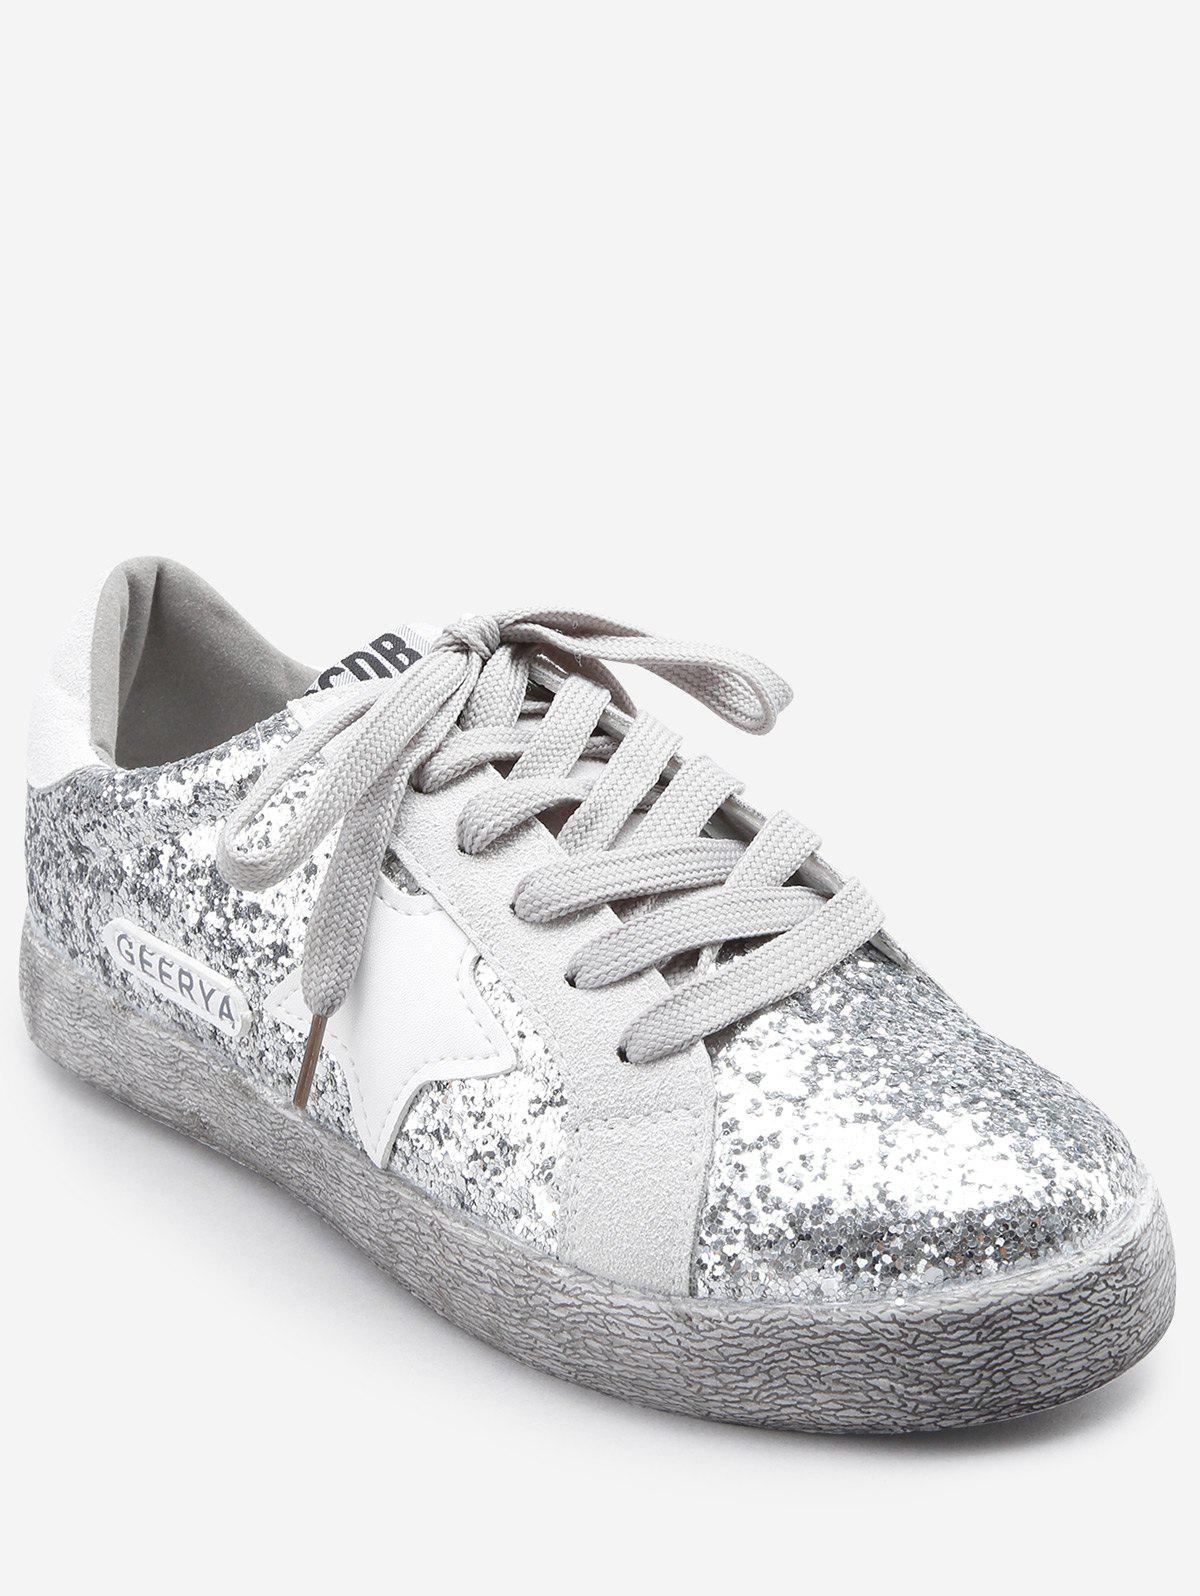 Sparkling Glitters Star Outdoor Casual Sneakers - SILVER 35